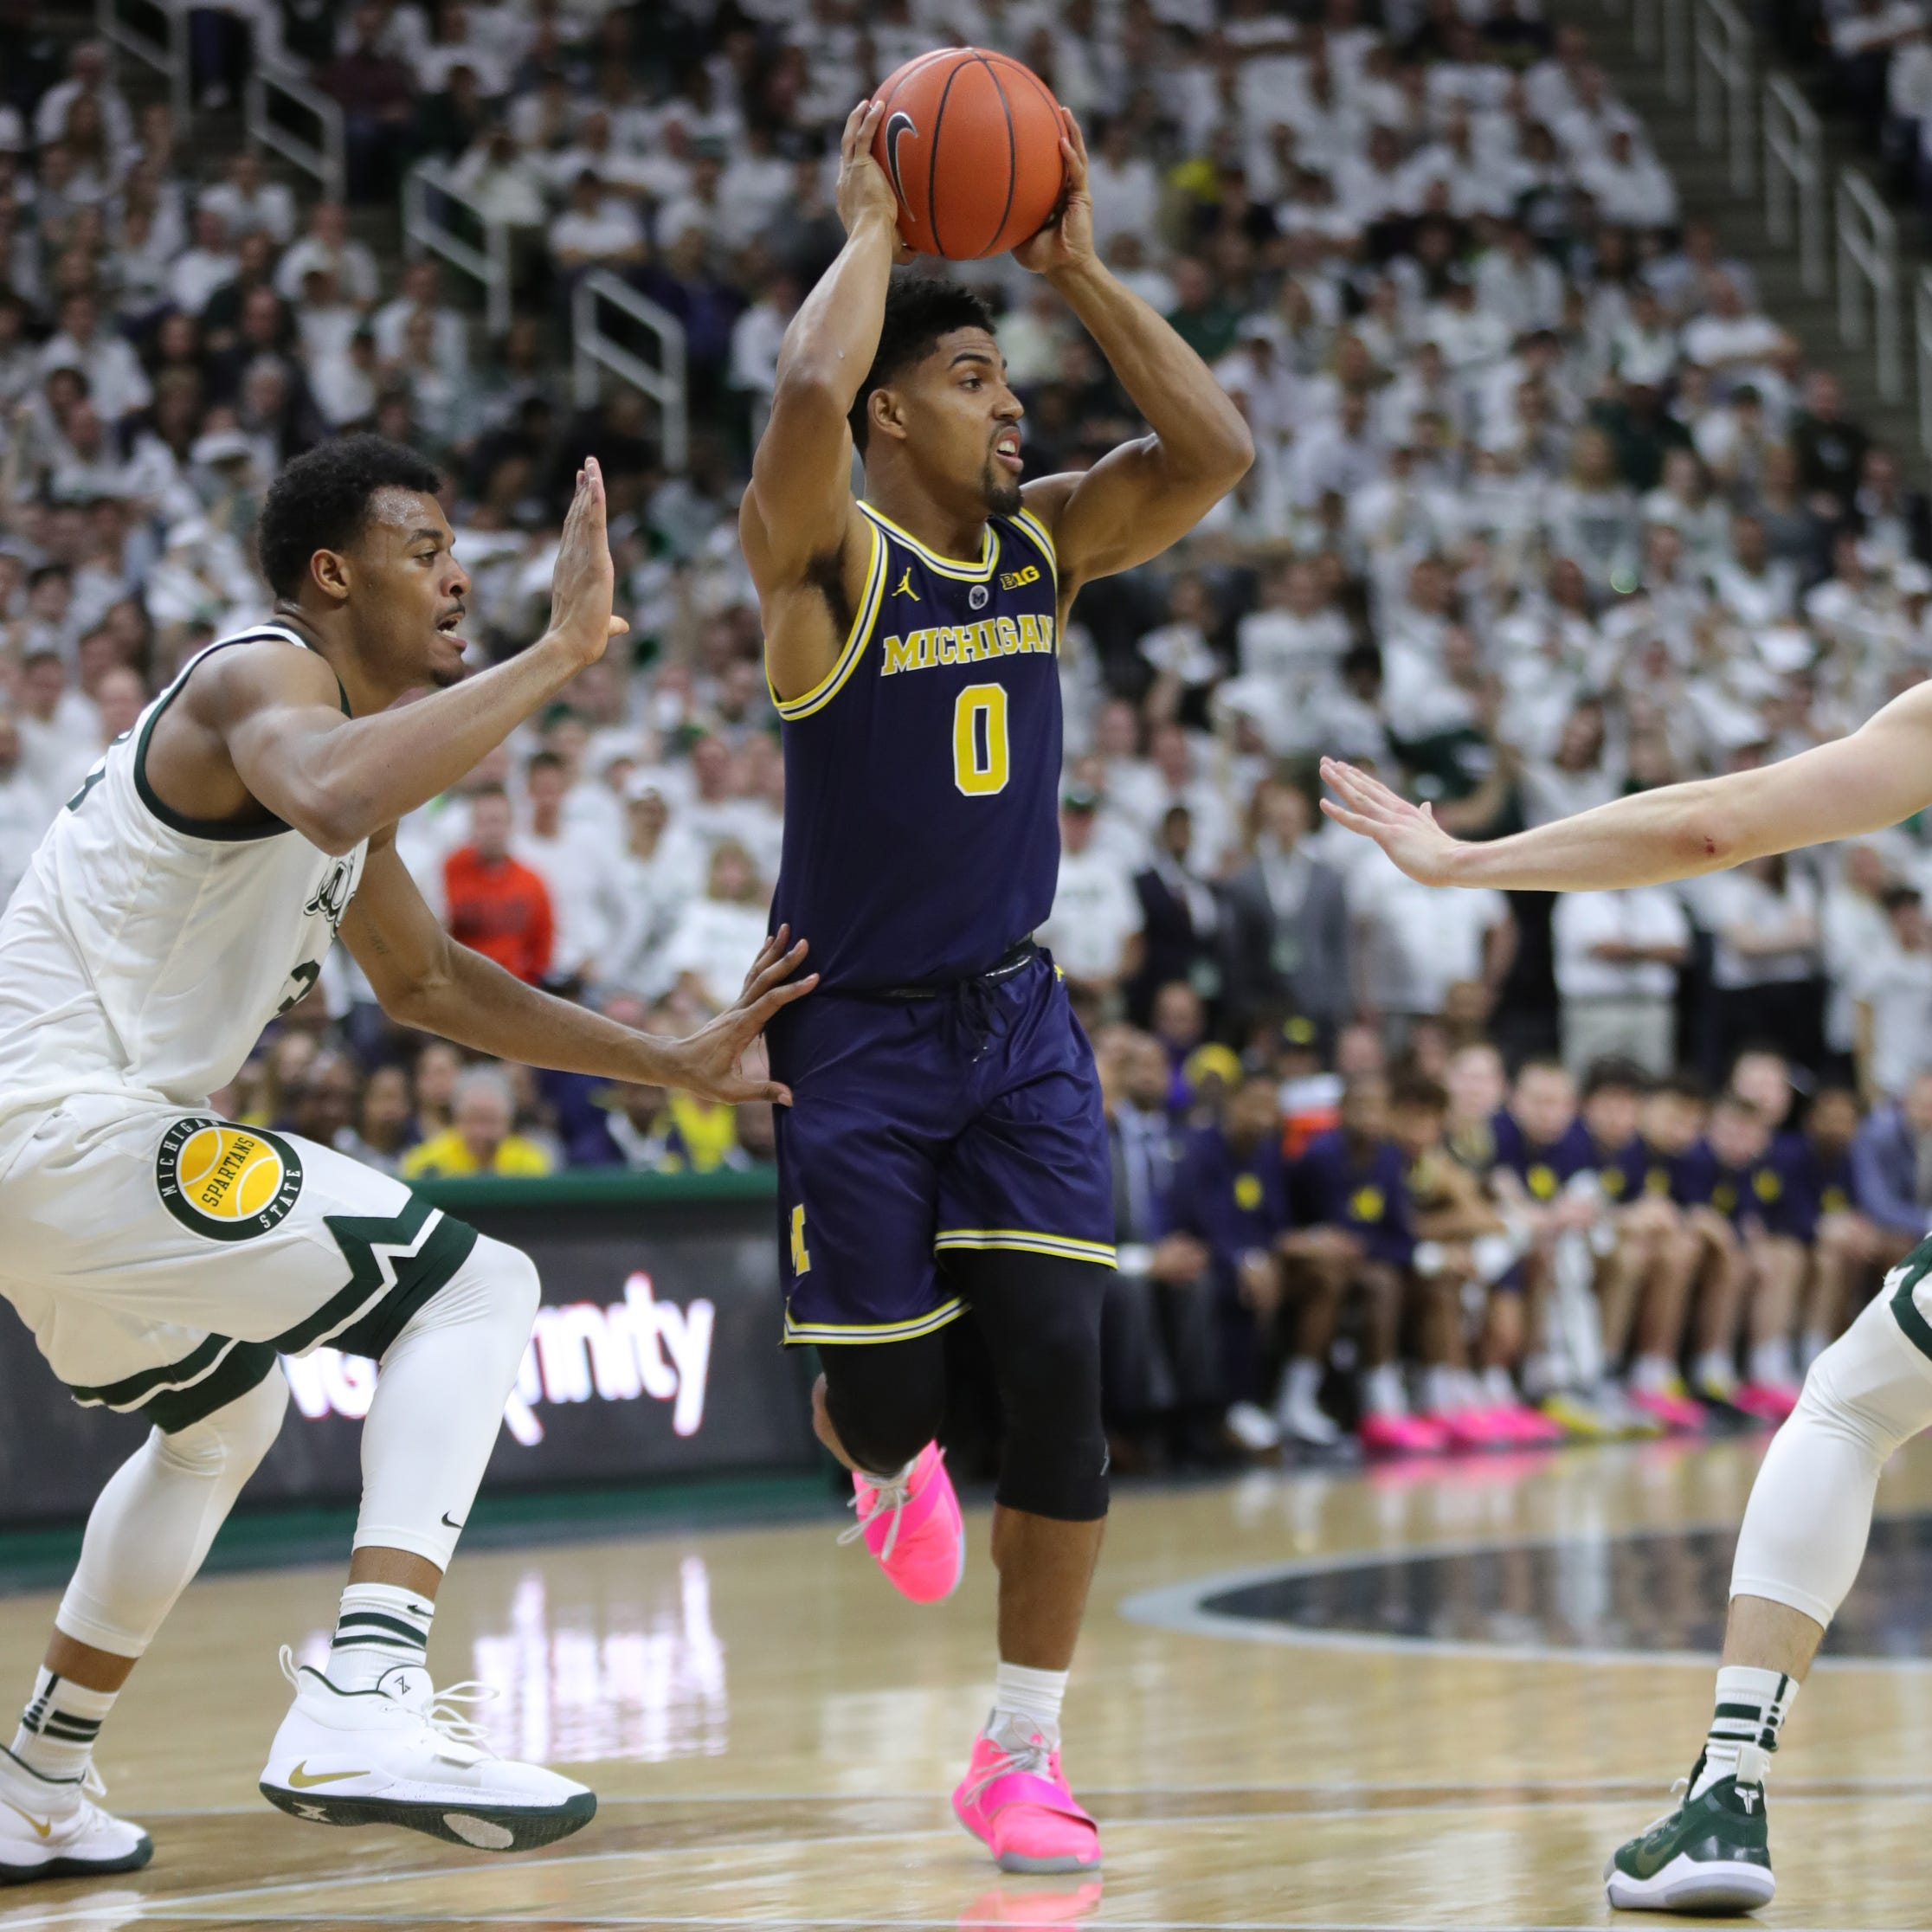 Michigan basketball collapses in 2nd half of loss to Michigan State, 75-63